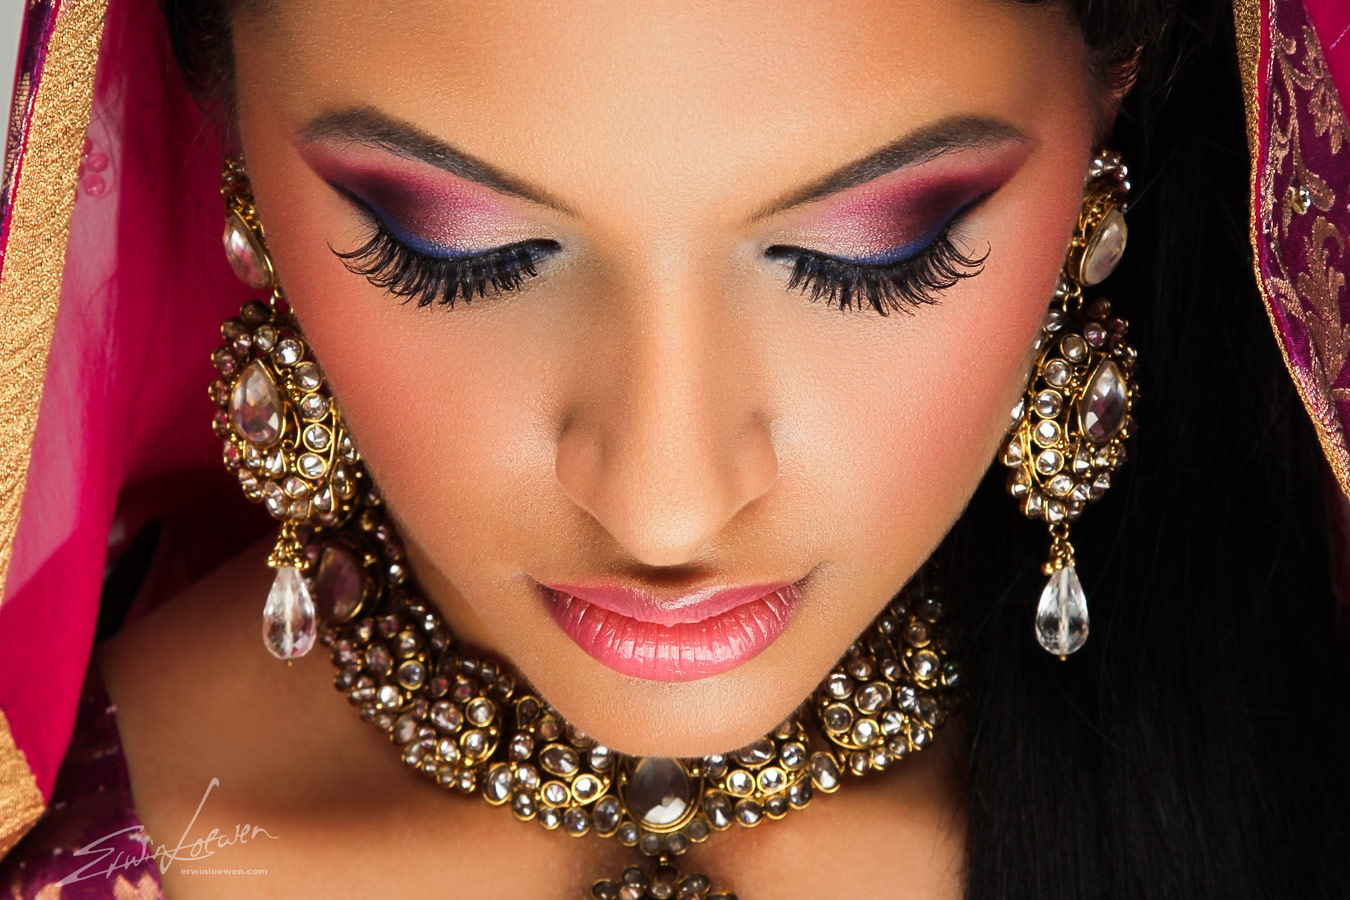 Bridal Makeup Salon Indian Bridal Makeup Expert Recommended Dos And Donts